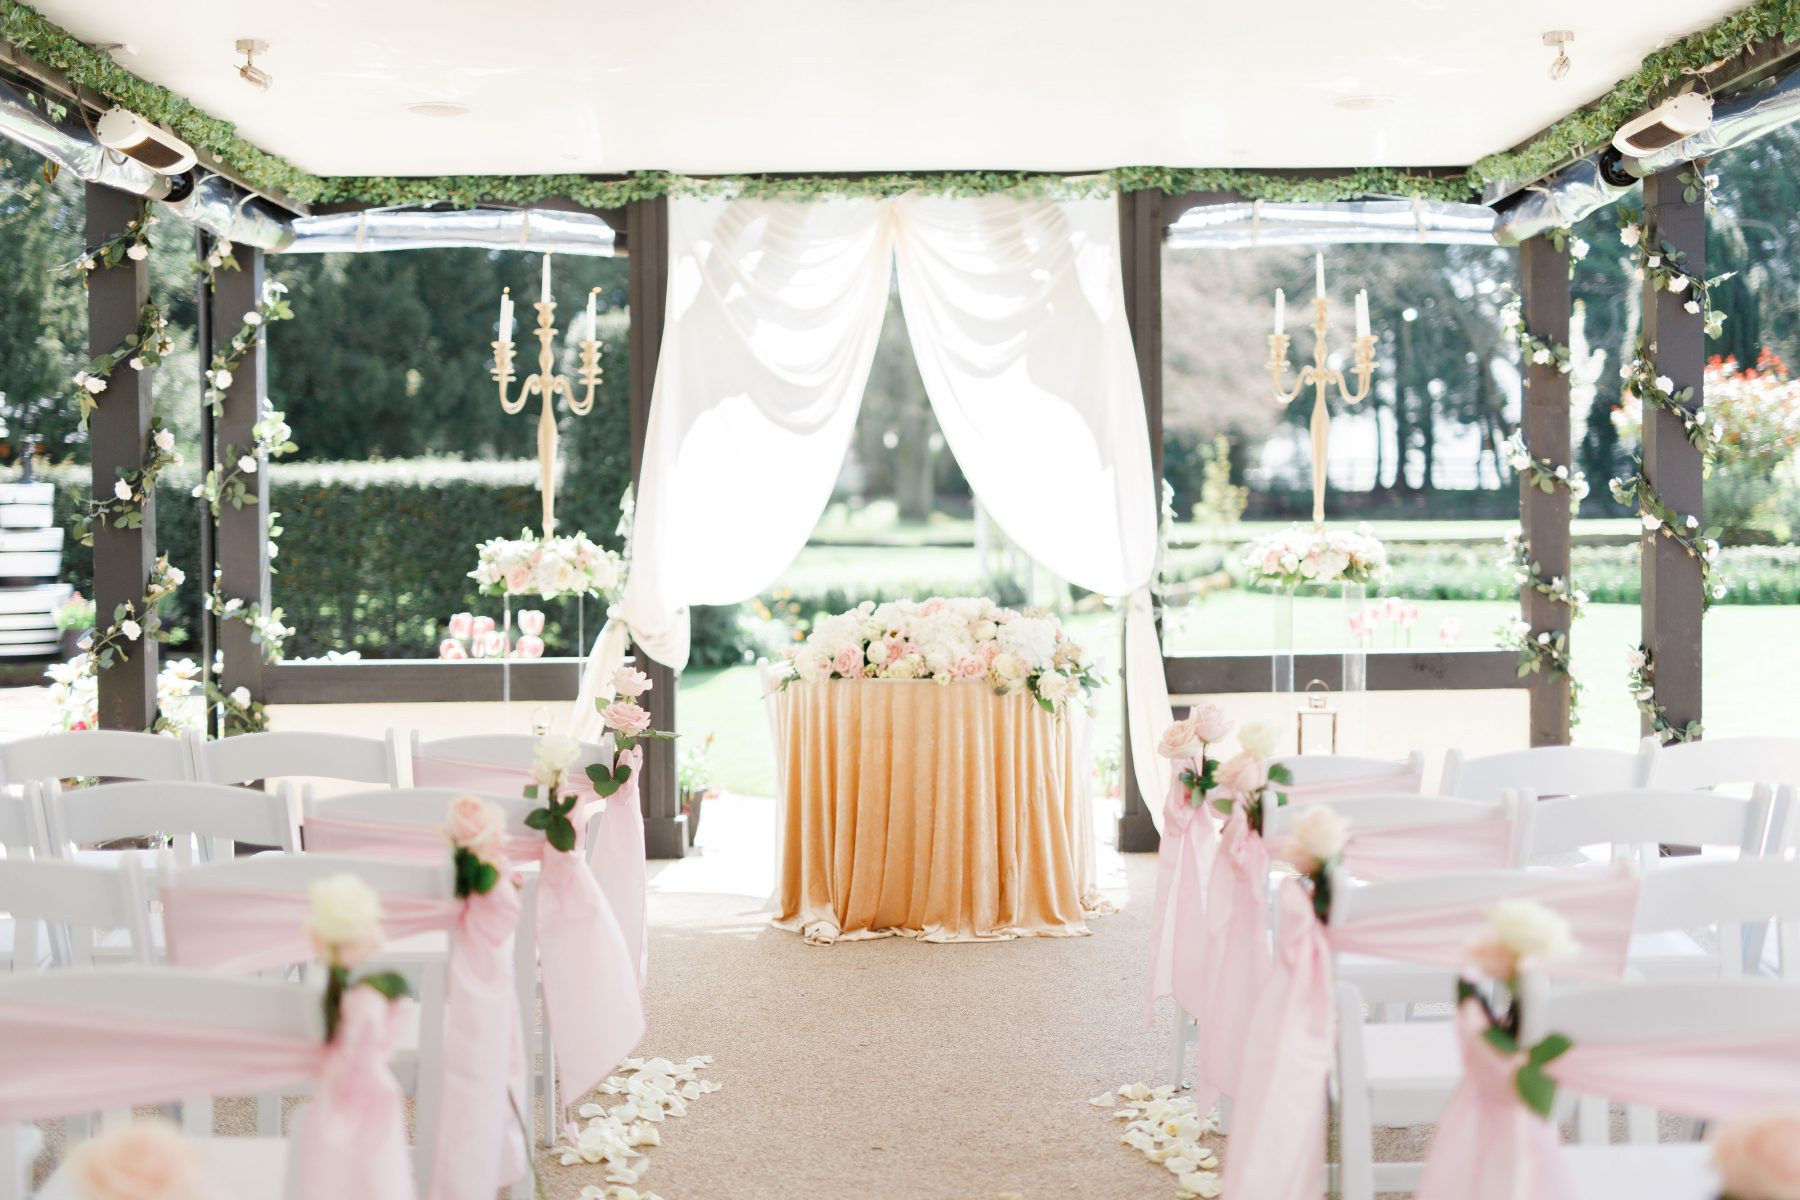 Al fresco weddings how to plan the perfect outdoor wedding ceremony